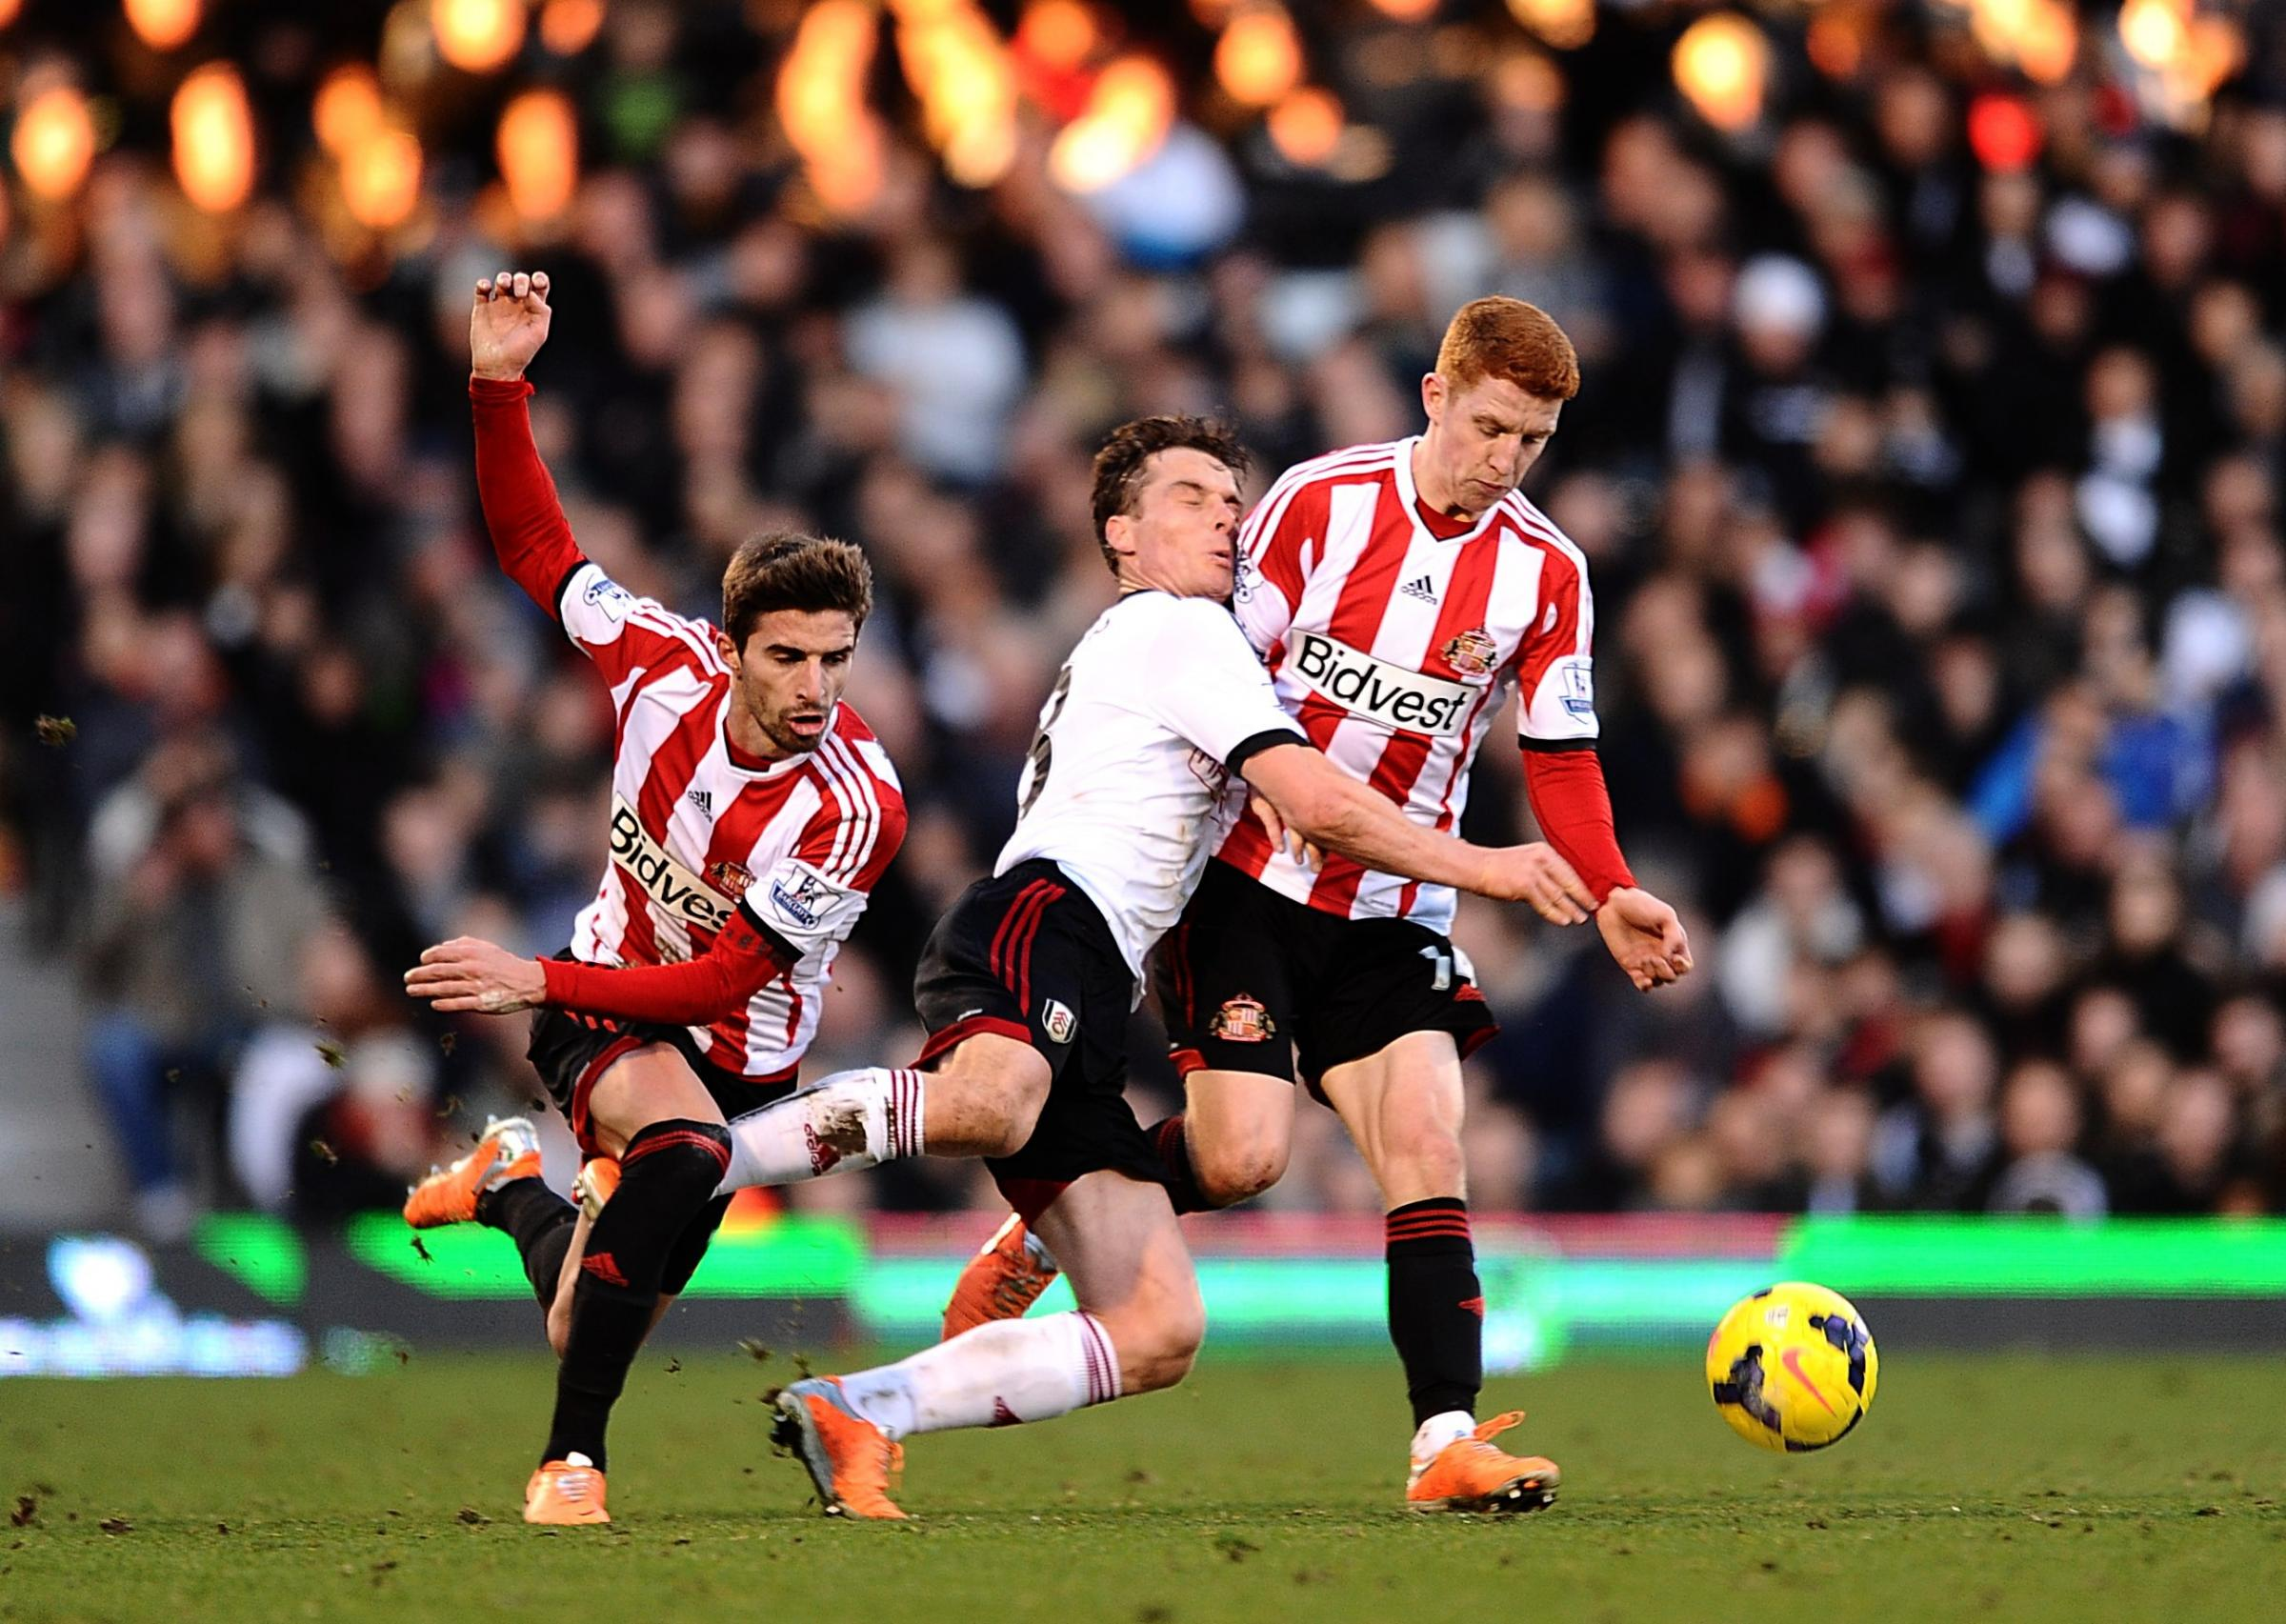 BRUSHED OFF: Jack Colback (right) wins a challenge with Fulham's Scott Parker